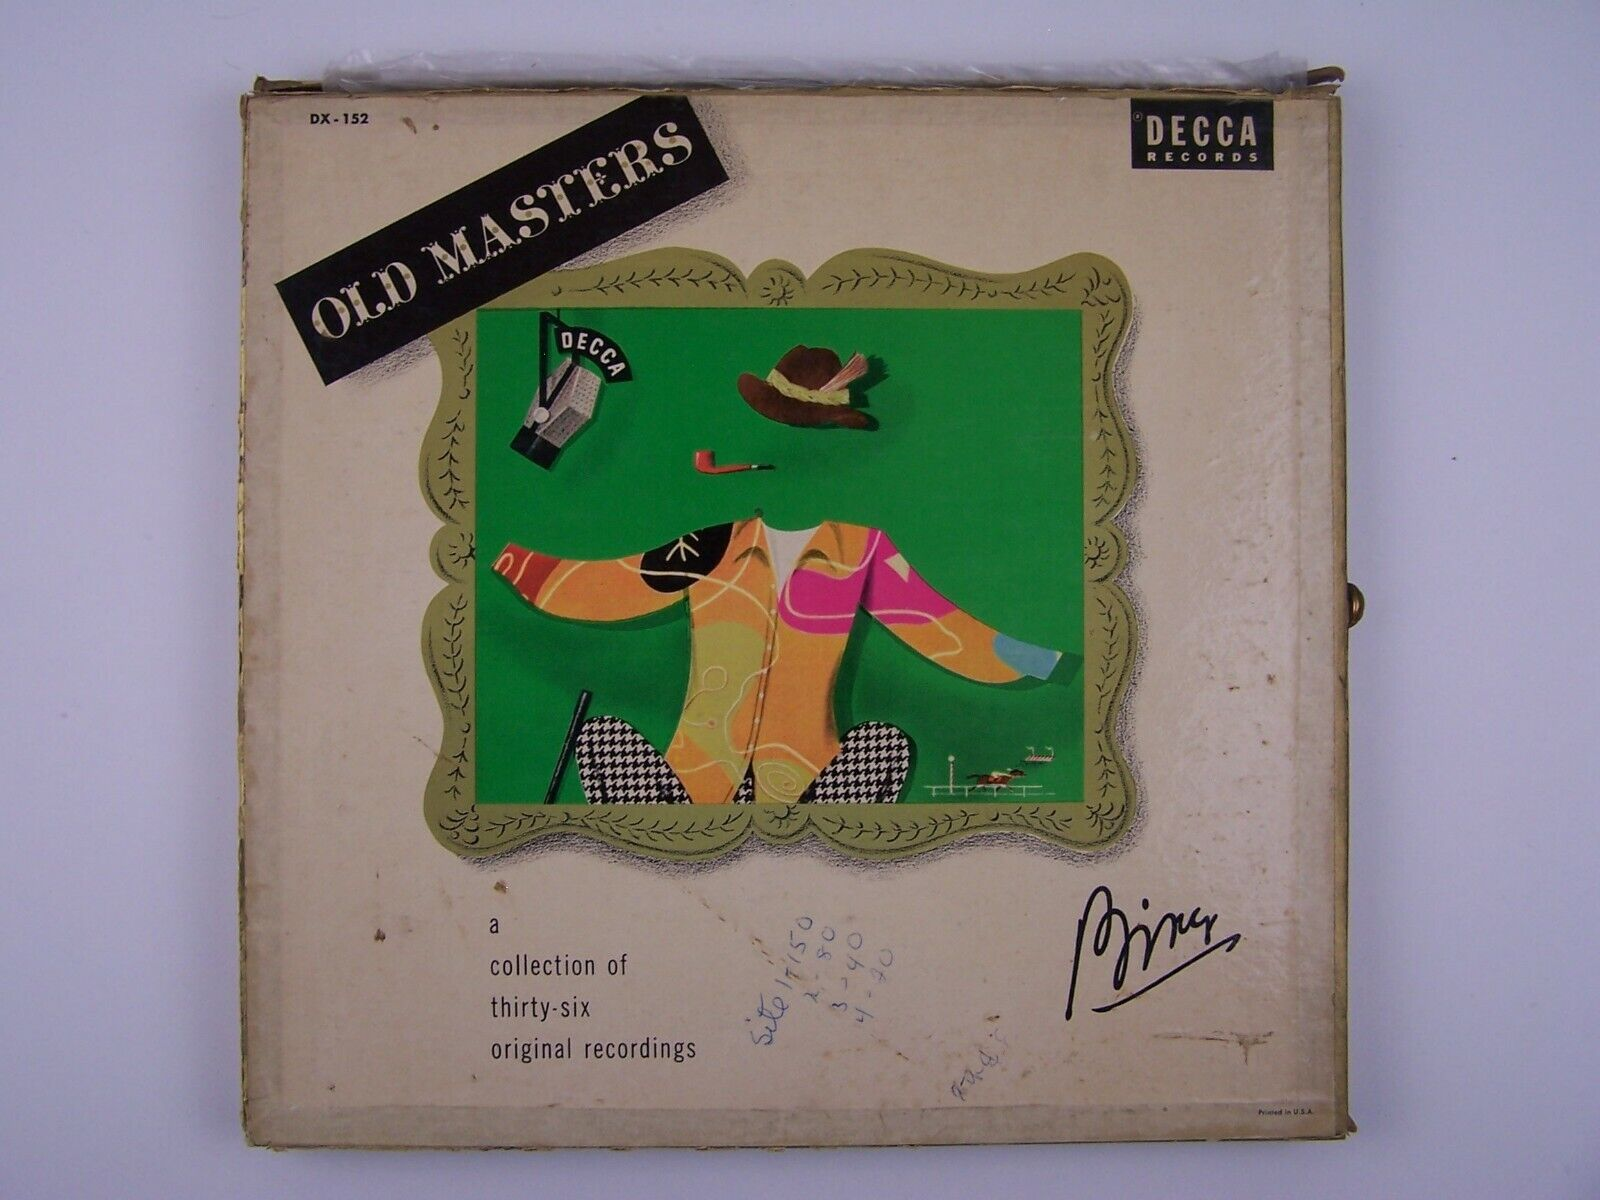 Bing Crosby - Old Masters 3xLP Vinyl Record Albums Box